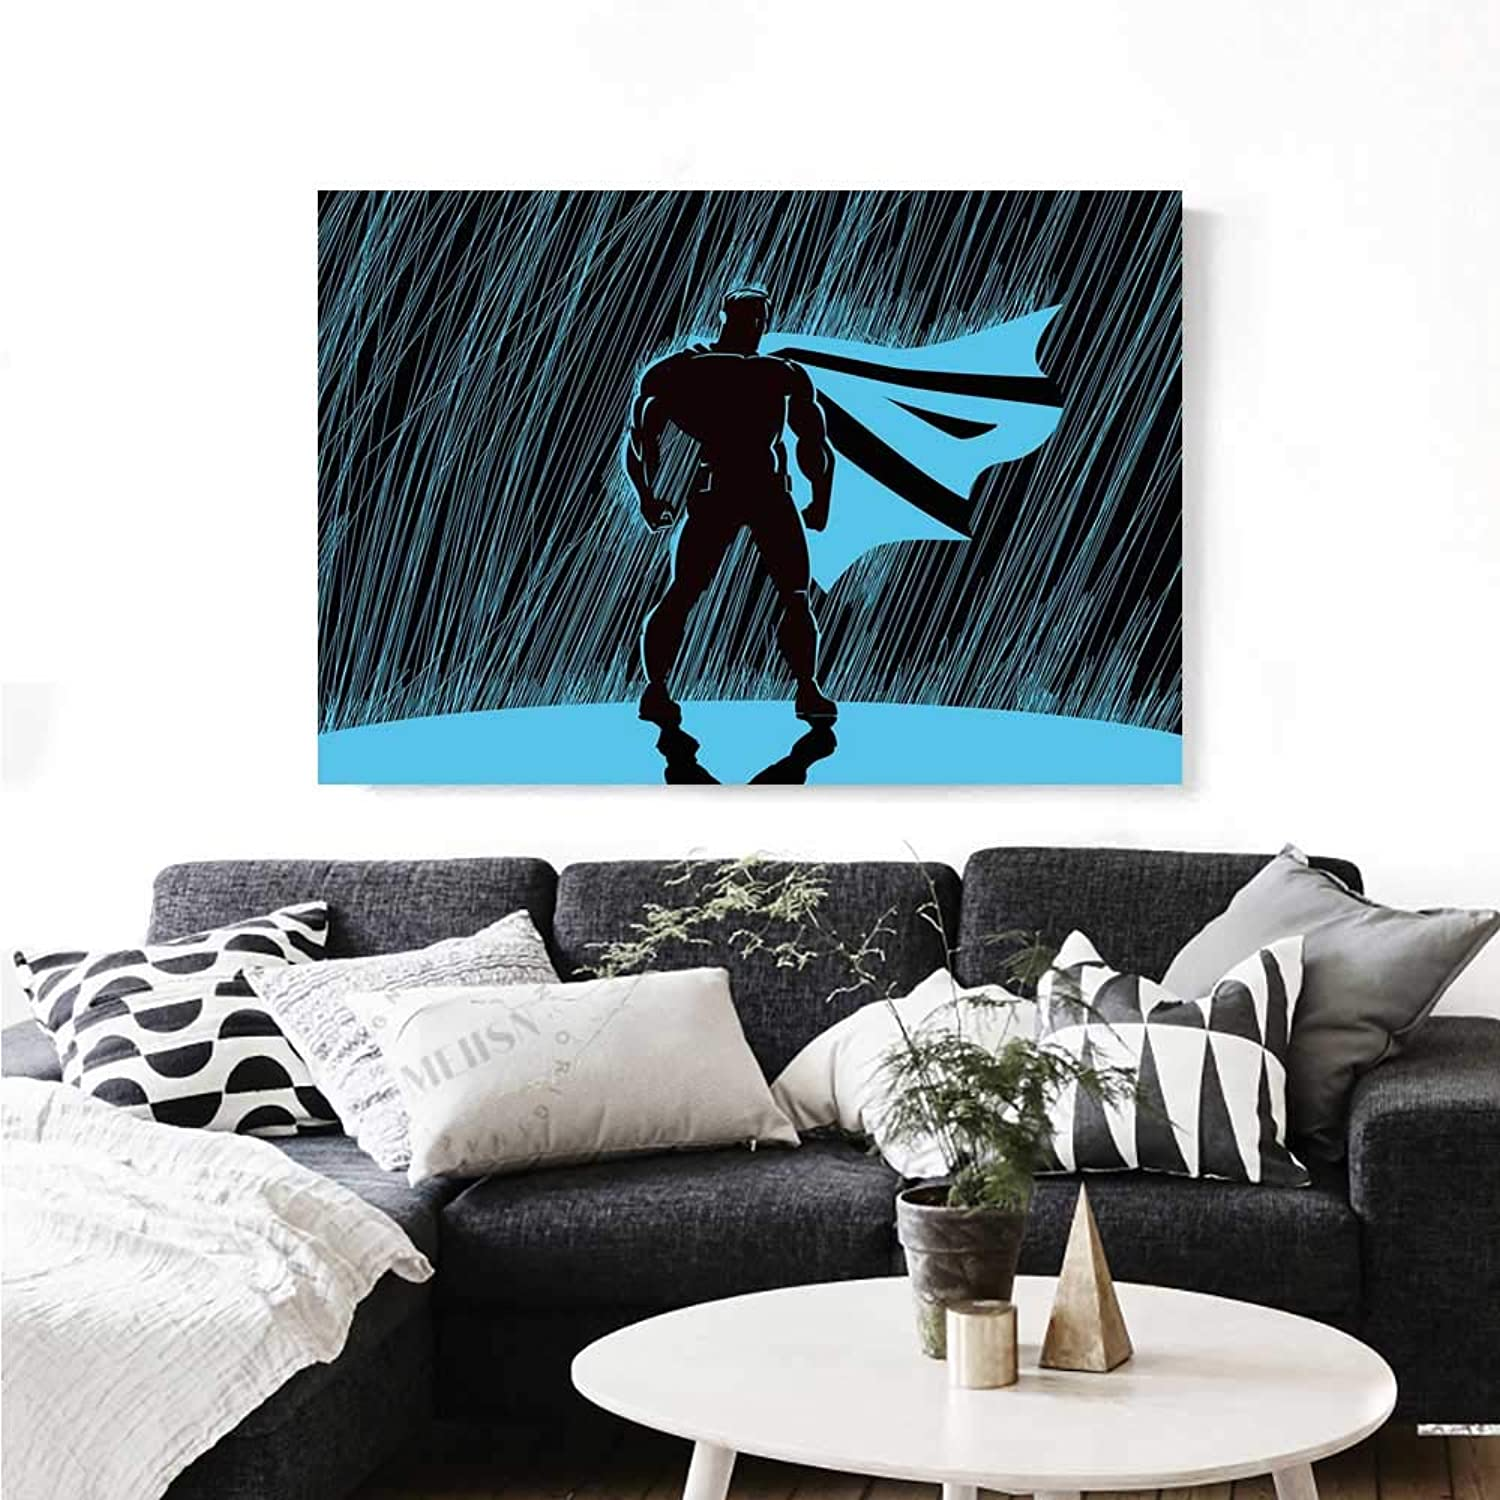 Warm Family Superhero Canvas Wall Art for Bedroom Home Decorations Hero in Rain at Night Dramatic Super Defender Macho Pride Neon Male Illustration Wall Stickers 36 x32  bluee Black